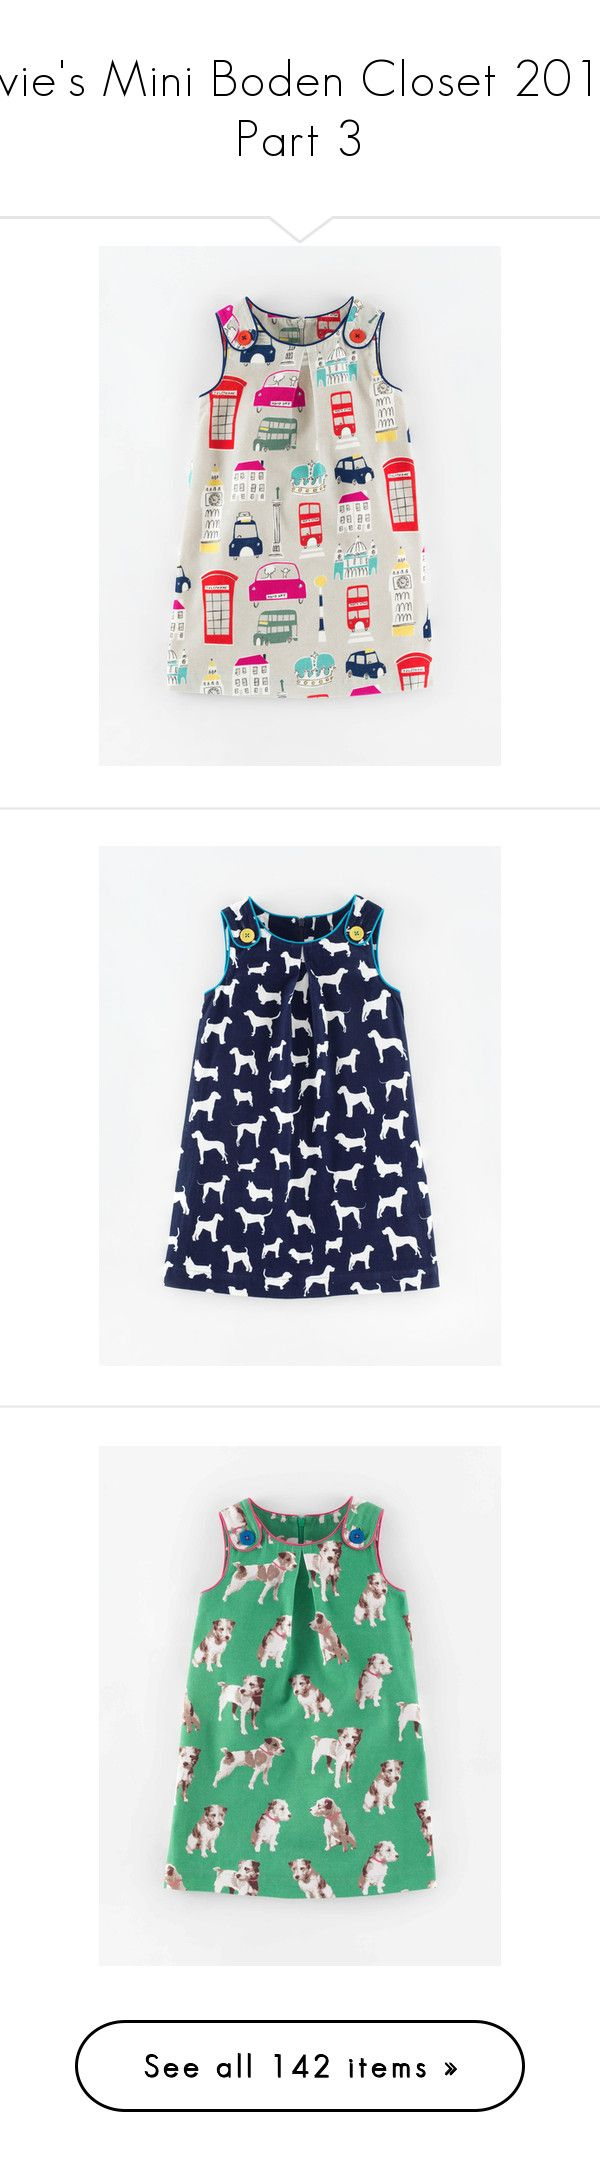 """""""Evie's Mini Boden Closet 2015 Part 3"""" by vanhelsing-mary ❤ liked on Polyvore featuring dresses, print dress, pinny dress, mixed print dress, pattern dress, pinafore dress, button dress, blue pinafore dress, blue button dress and blue dress"""